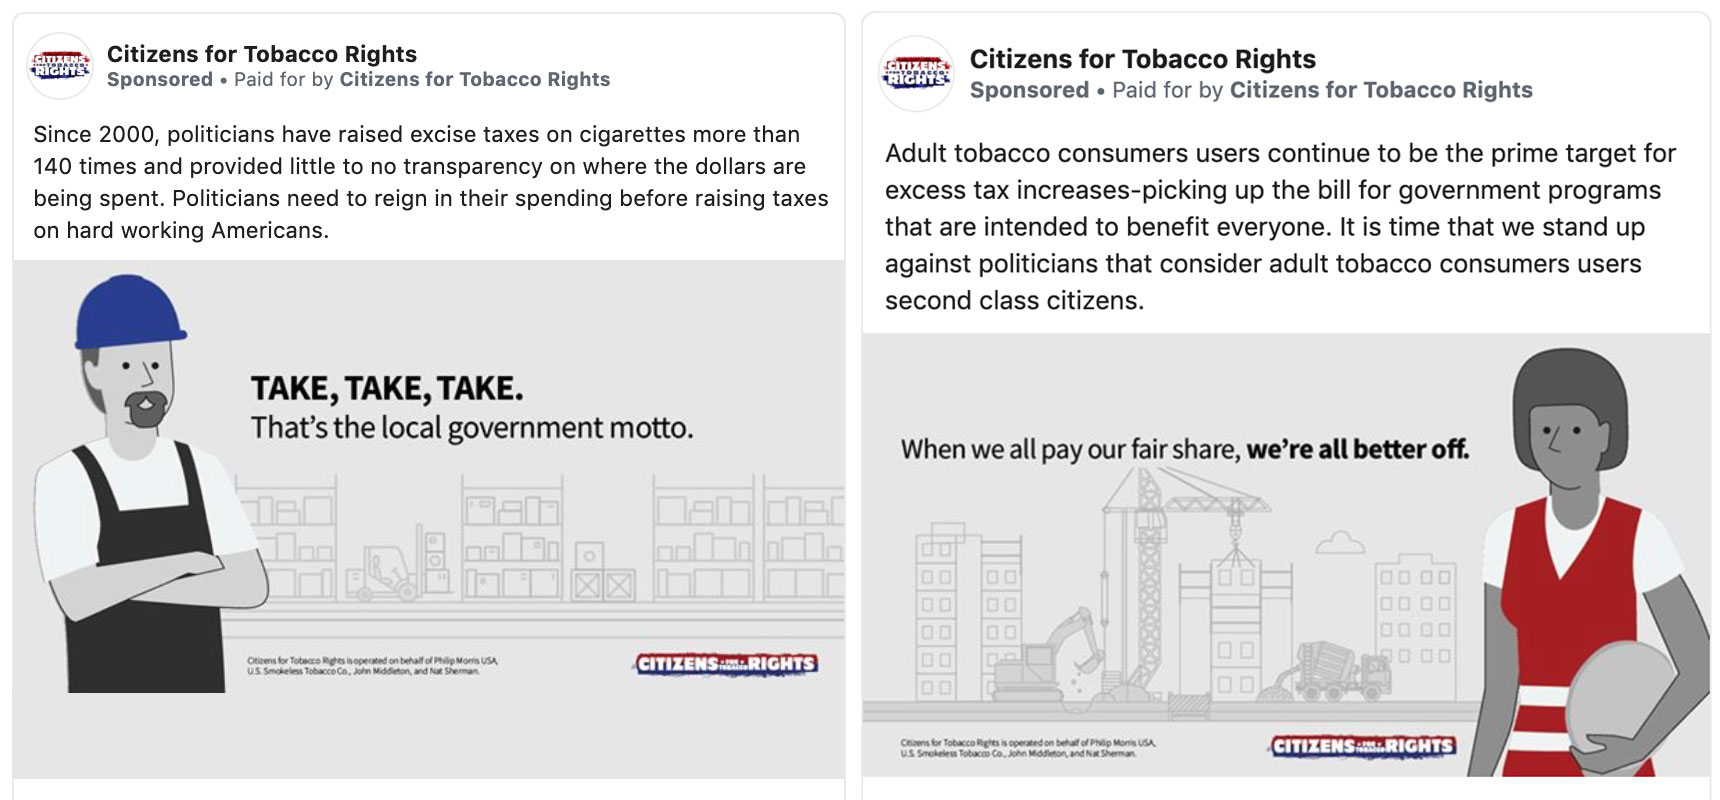 Big tobacco keeps starting 'grassroots' Facebook campaigns